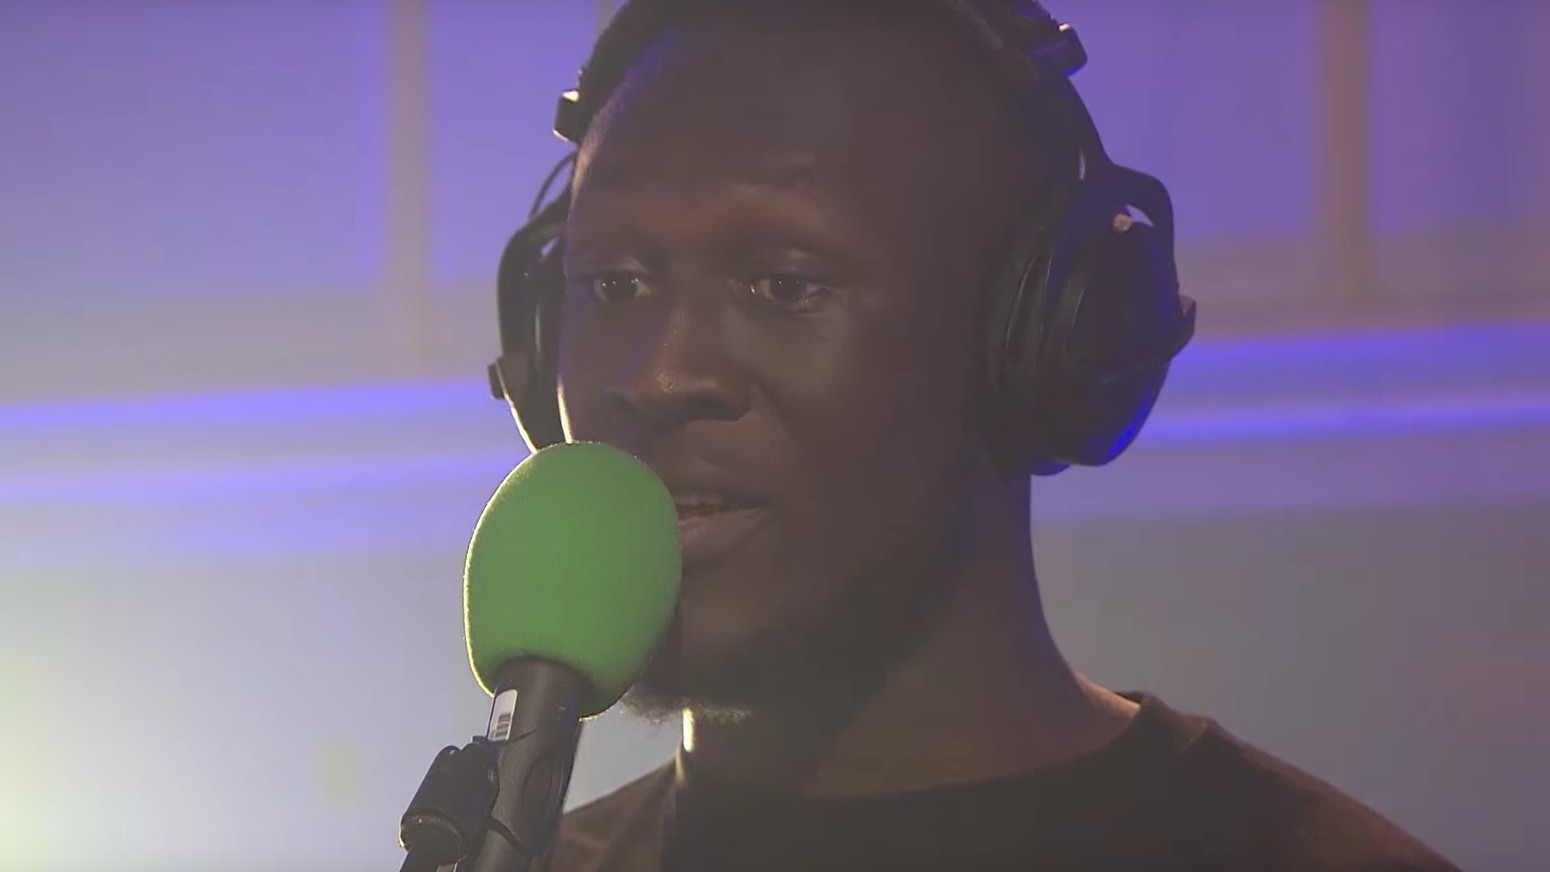 watch stormzy cover frank ocean's godspeed in the live lounge